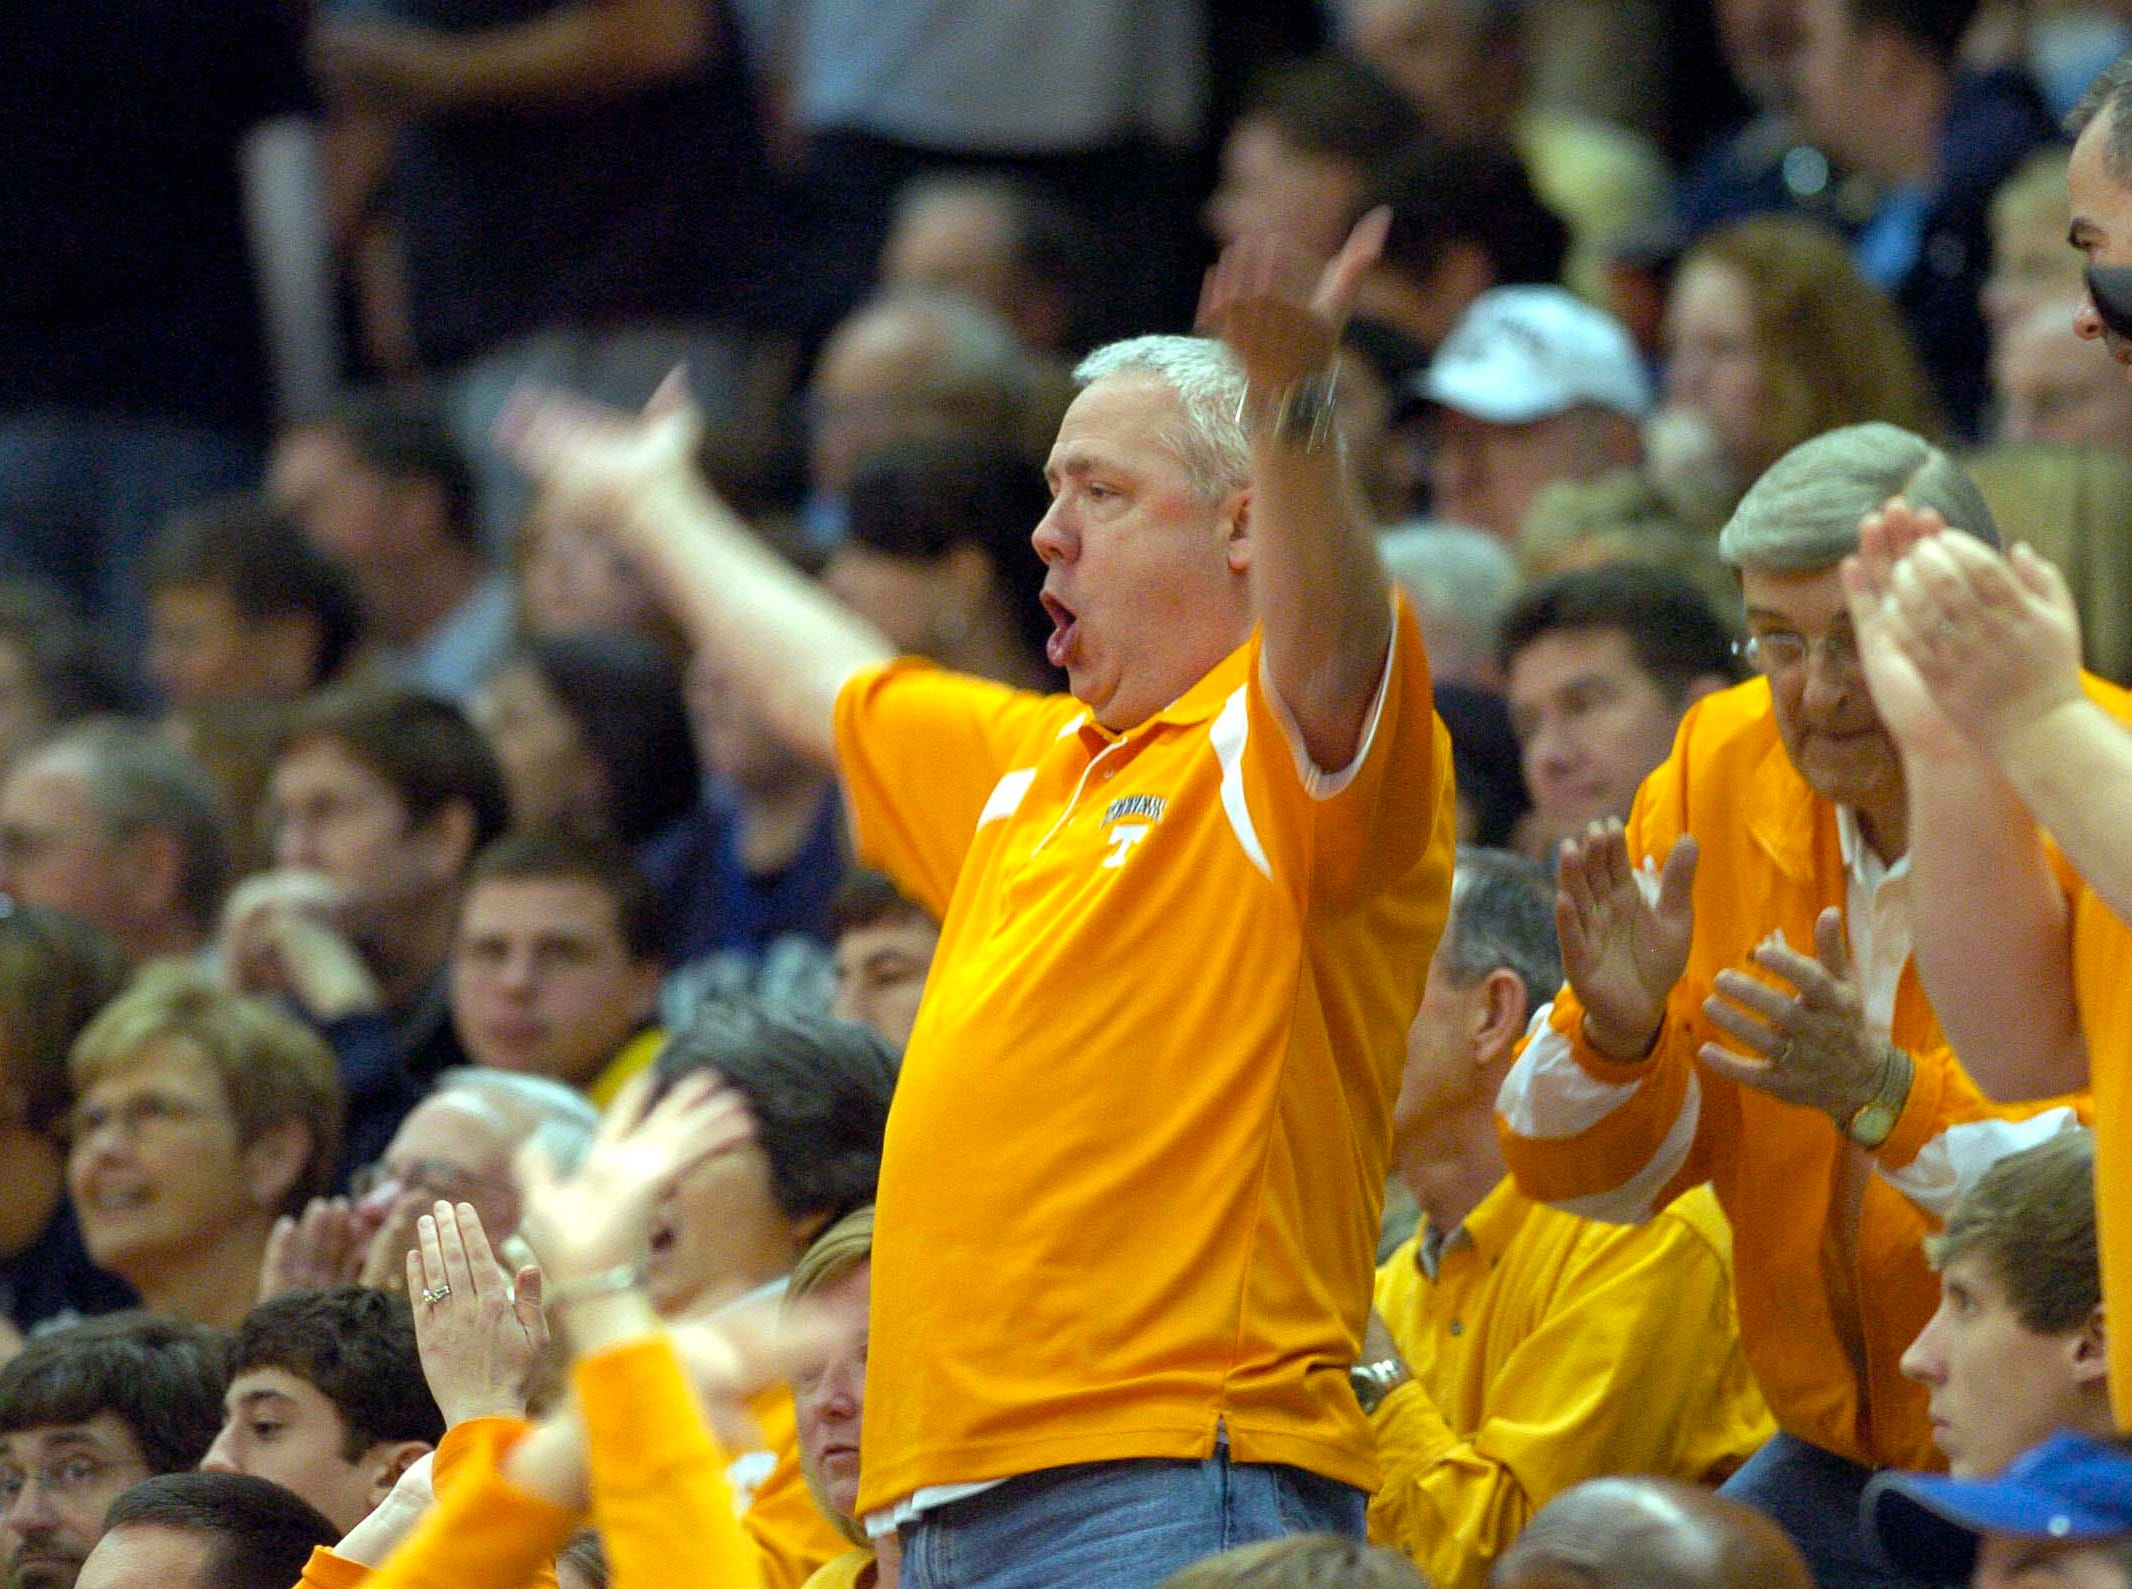 Tennessee fan tries to pump up the crowd against American University during first round competition of the 2008 NCAA Tournament in Birmingham on Friday. Tennessee won the game 72-57 and advance to play the winner of Butler vs. South Alabama.